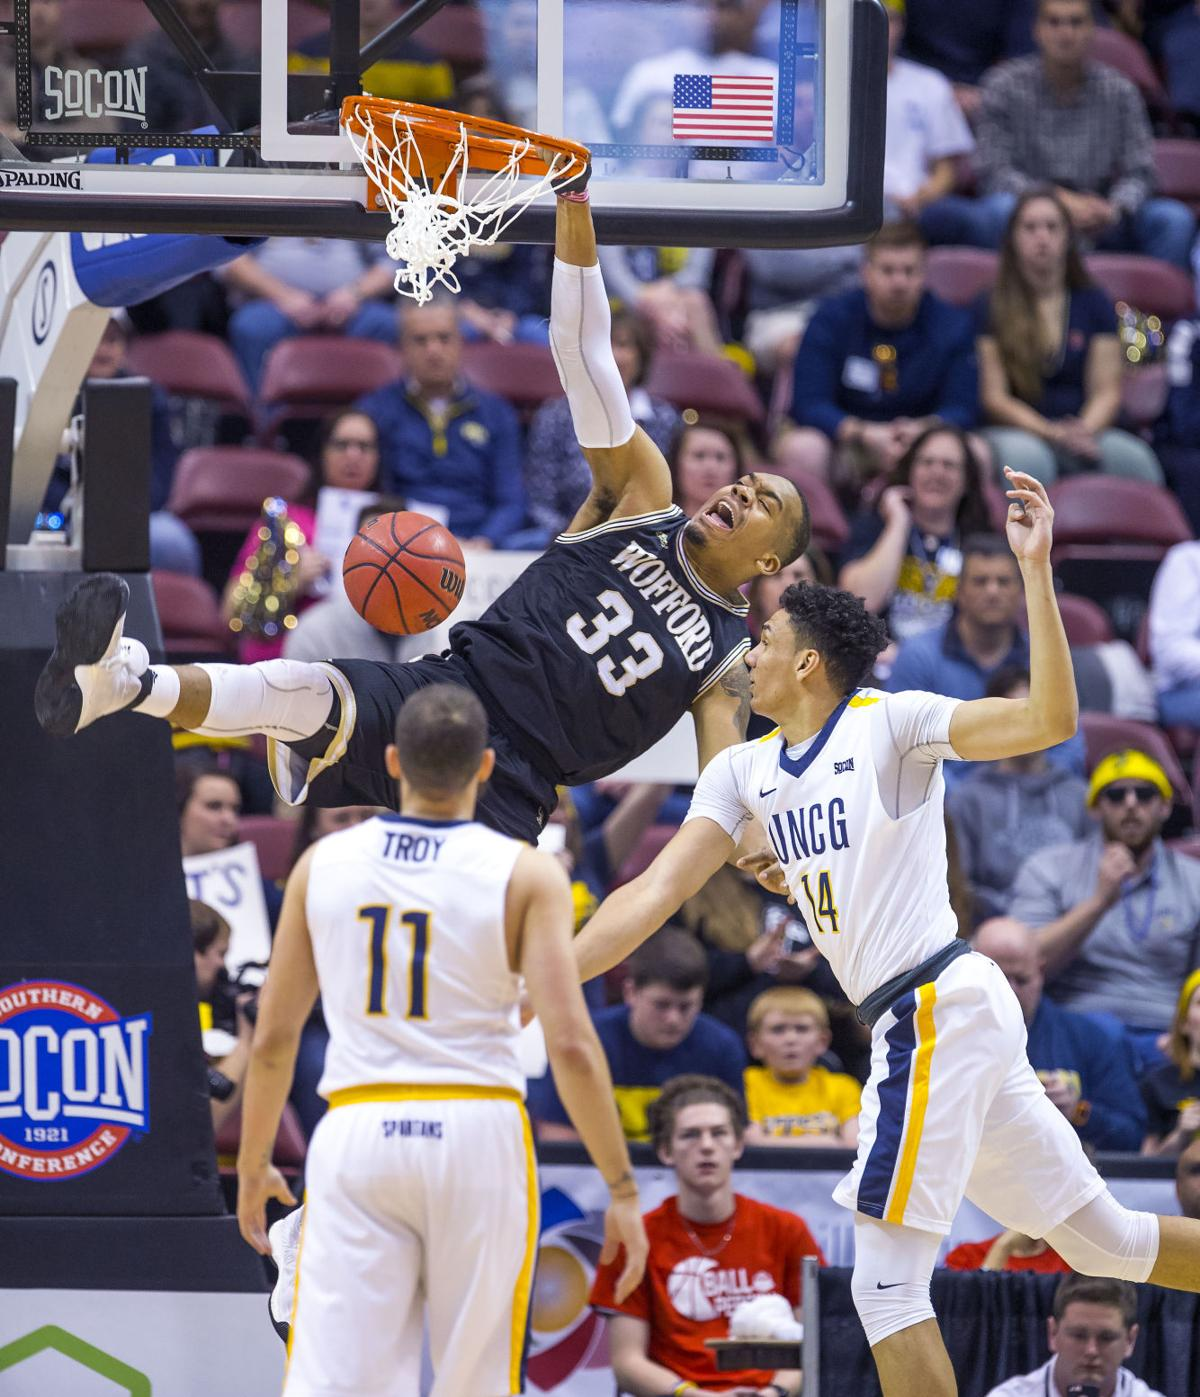 Image result for uncg 56, wofford 55